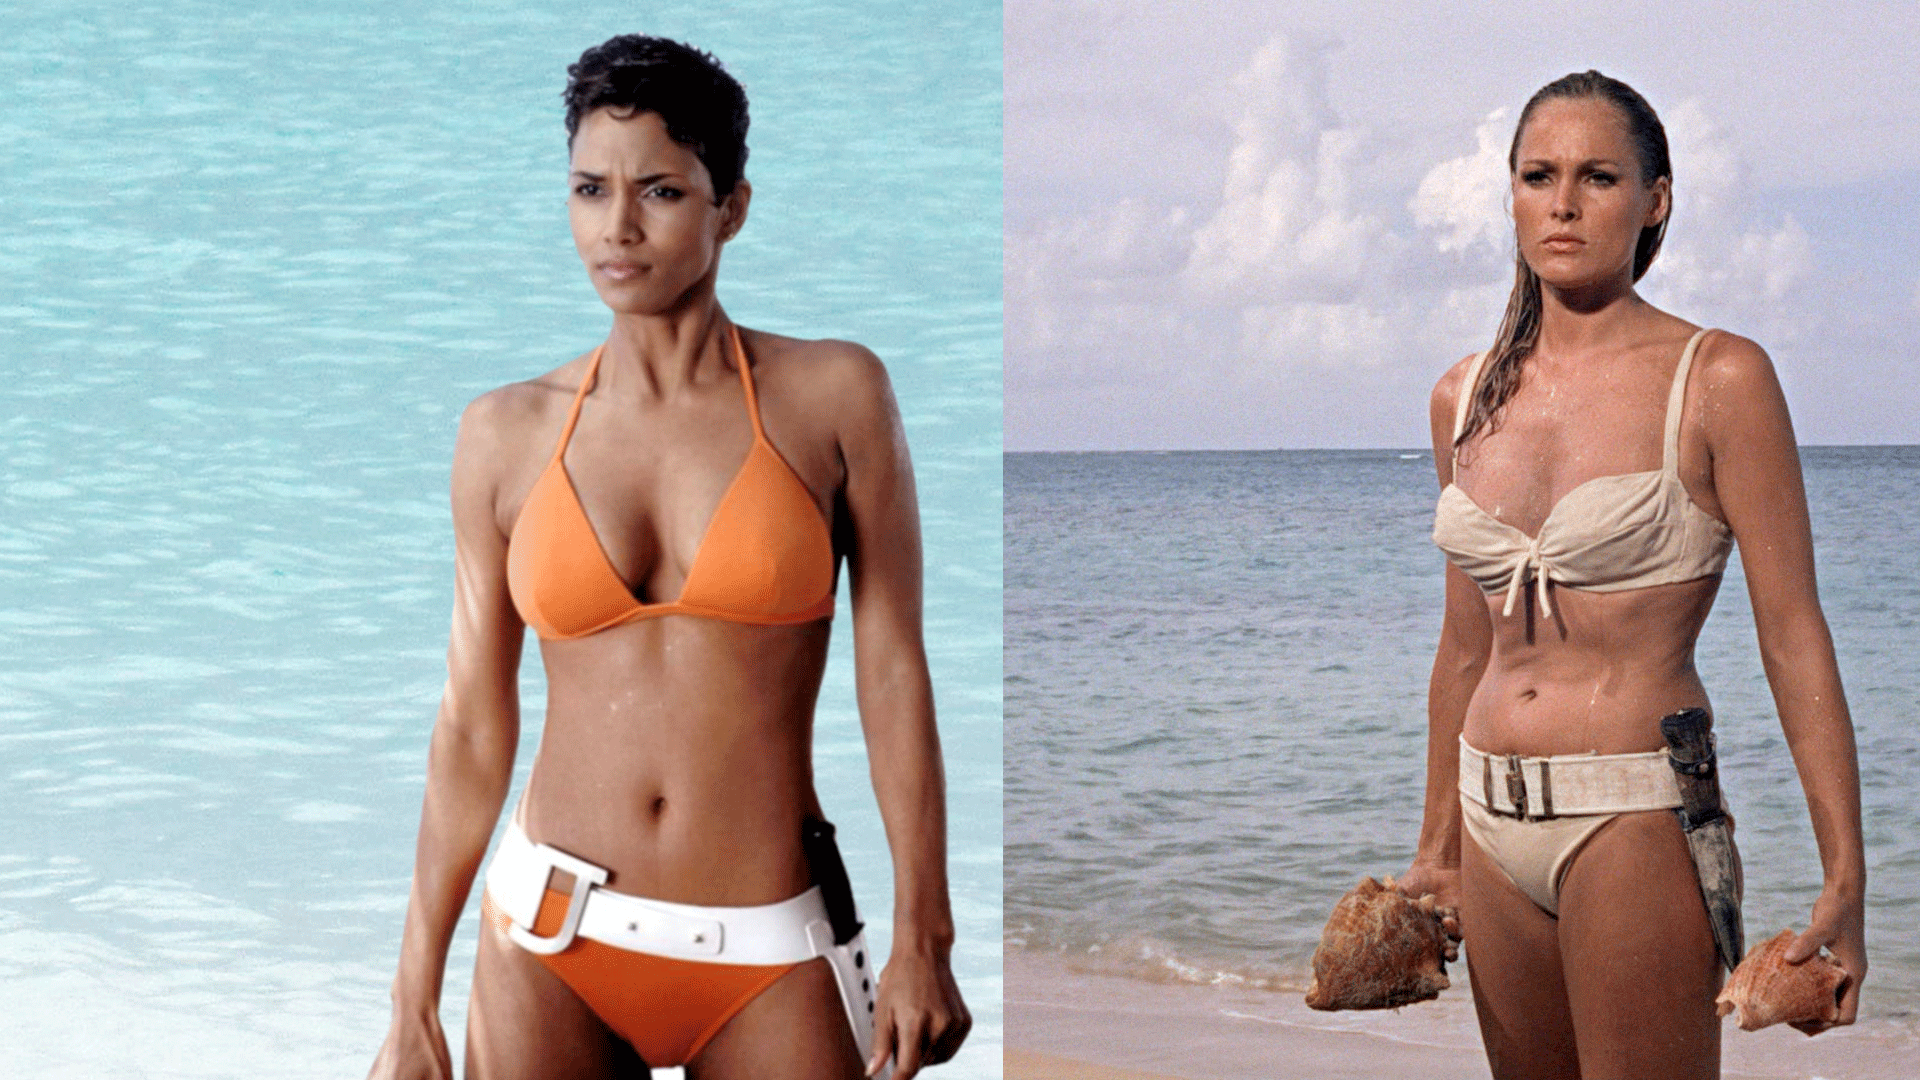 Halle Berry in Die Another Day vs. Ursula Andress in Dr. No